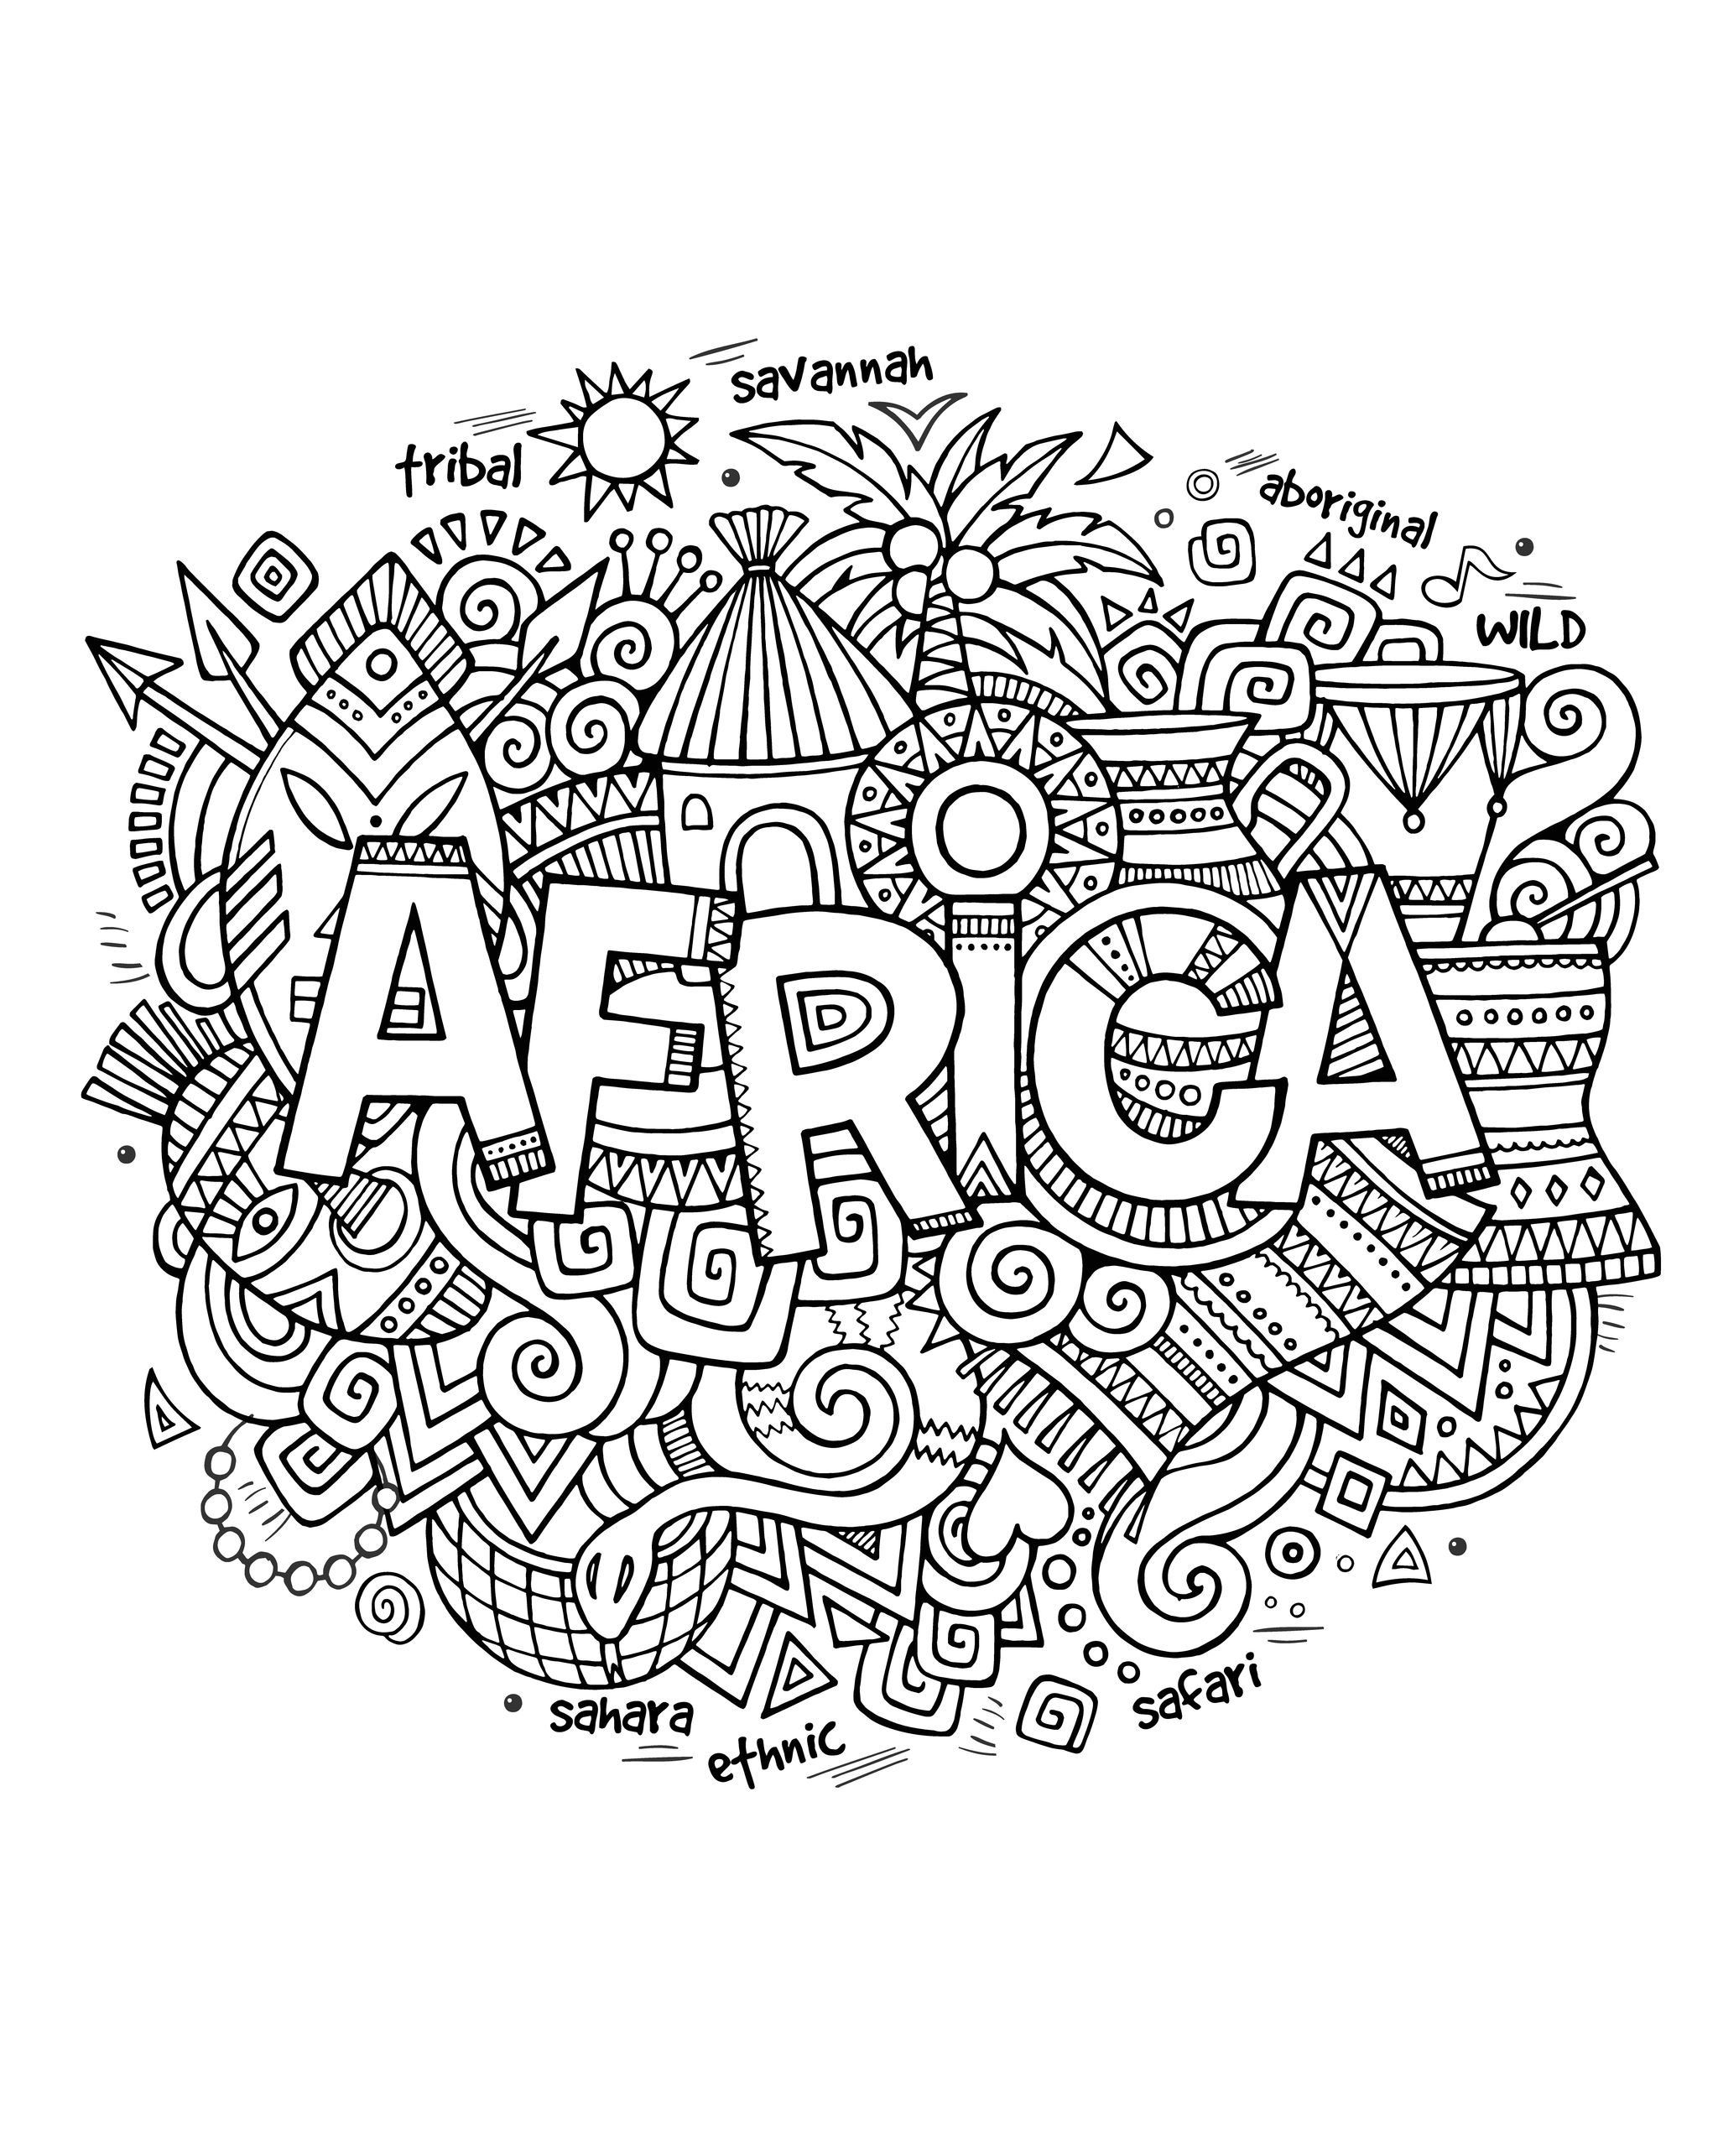 Coloring book software - Free Coloring Page Coloring Adult Africa Abstract Symbols Drawing With The